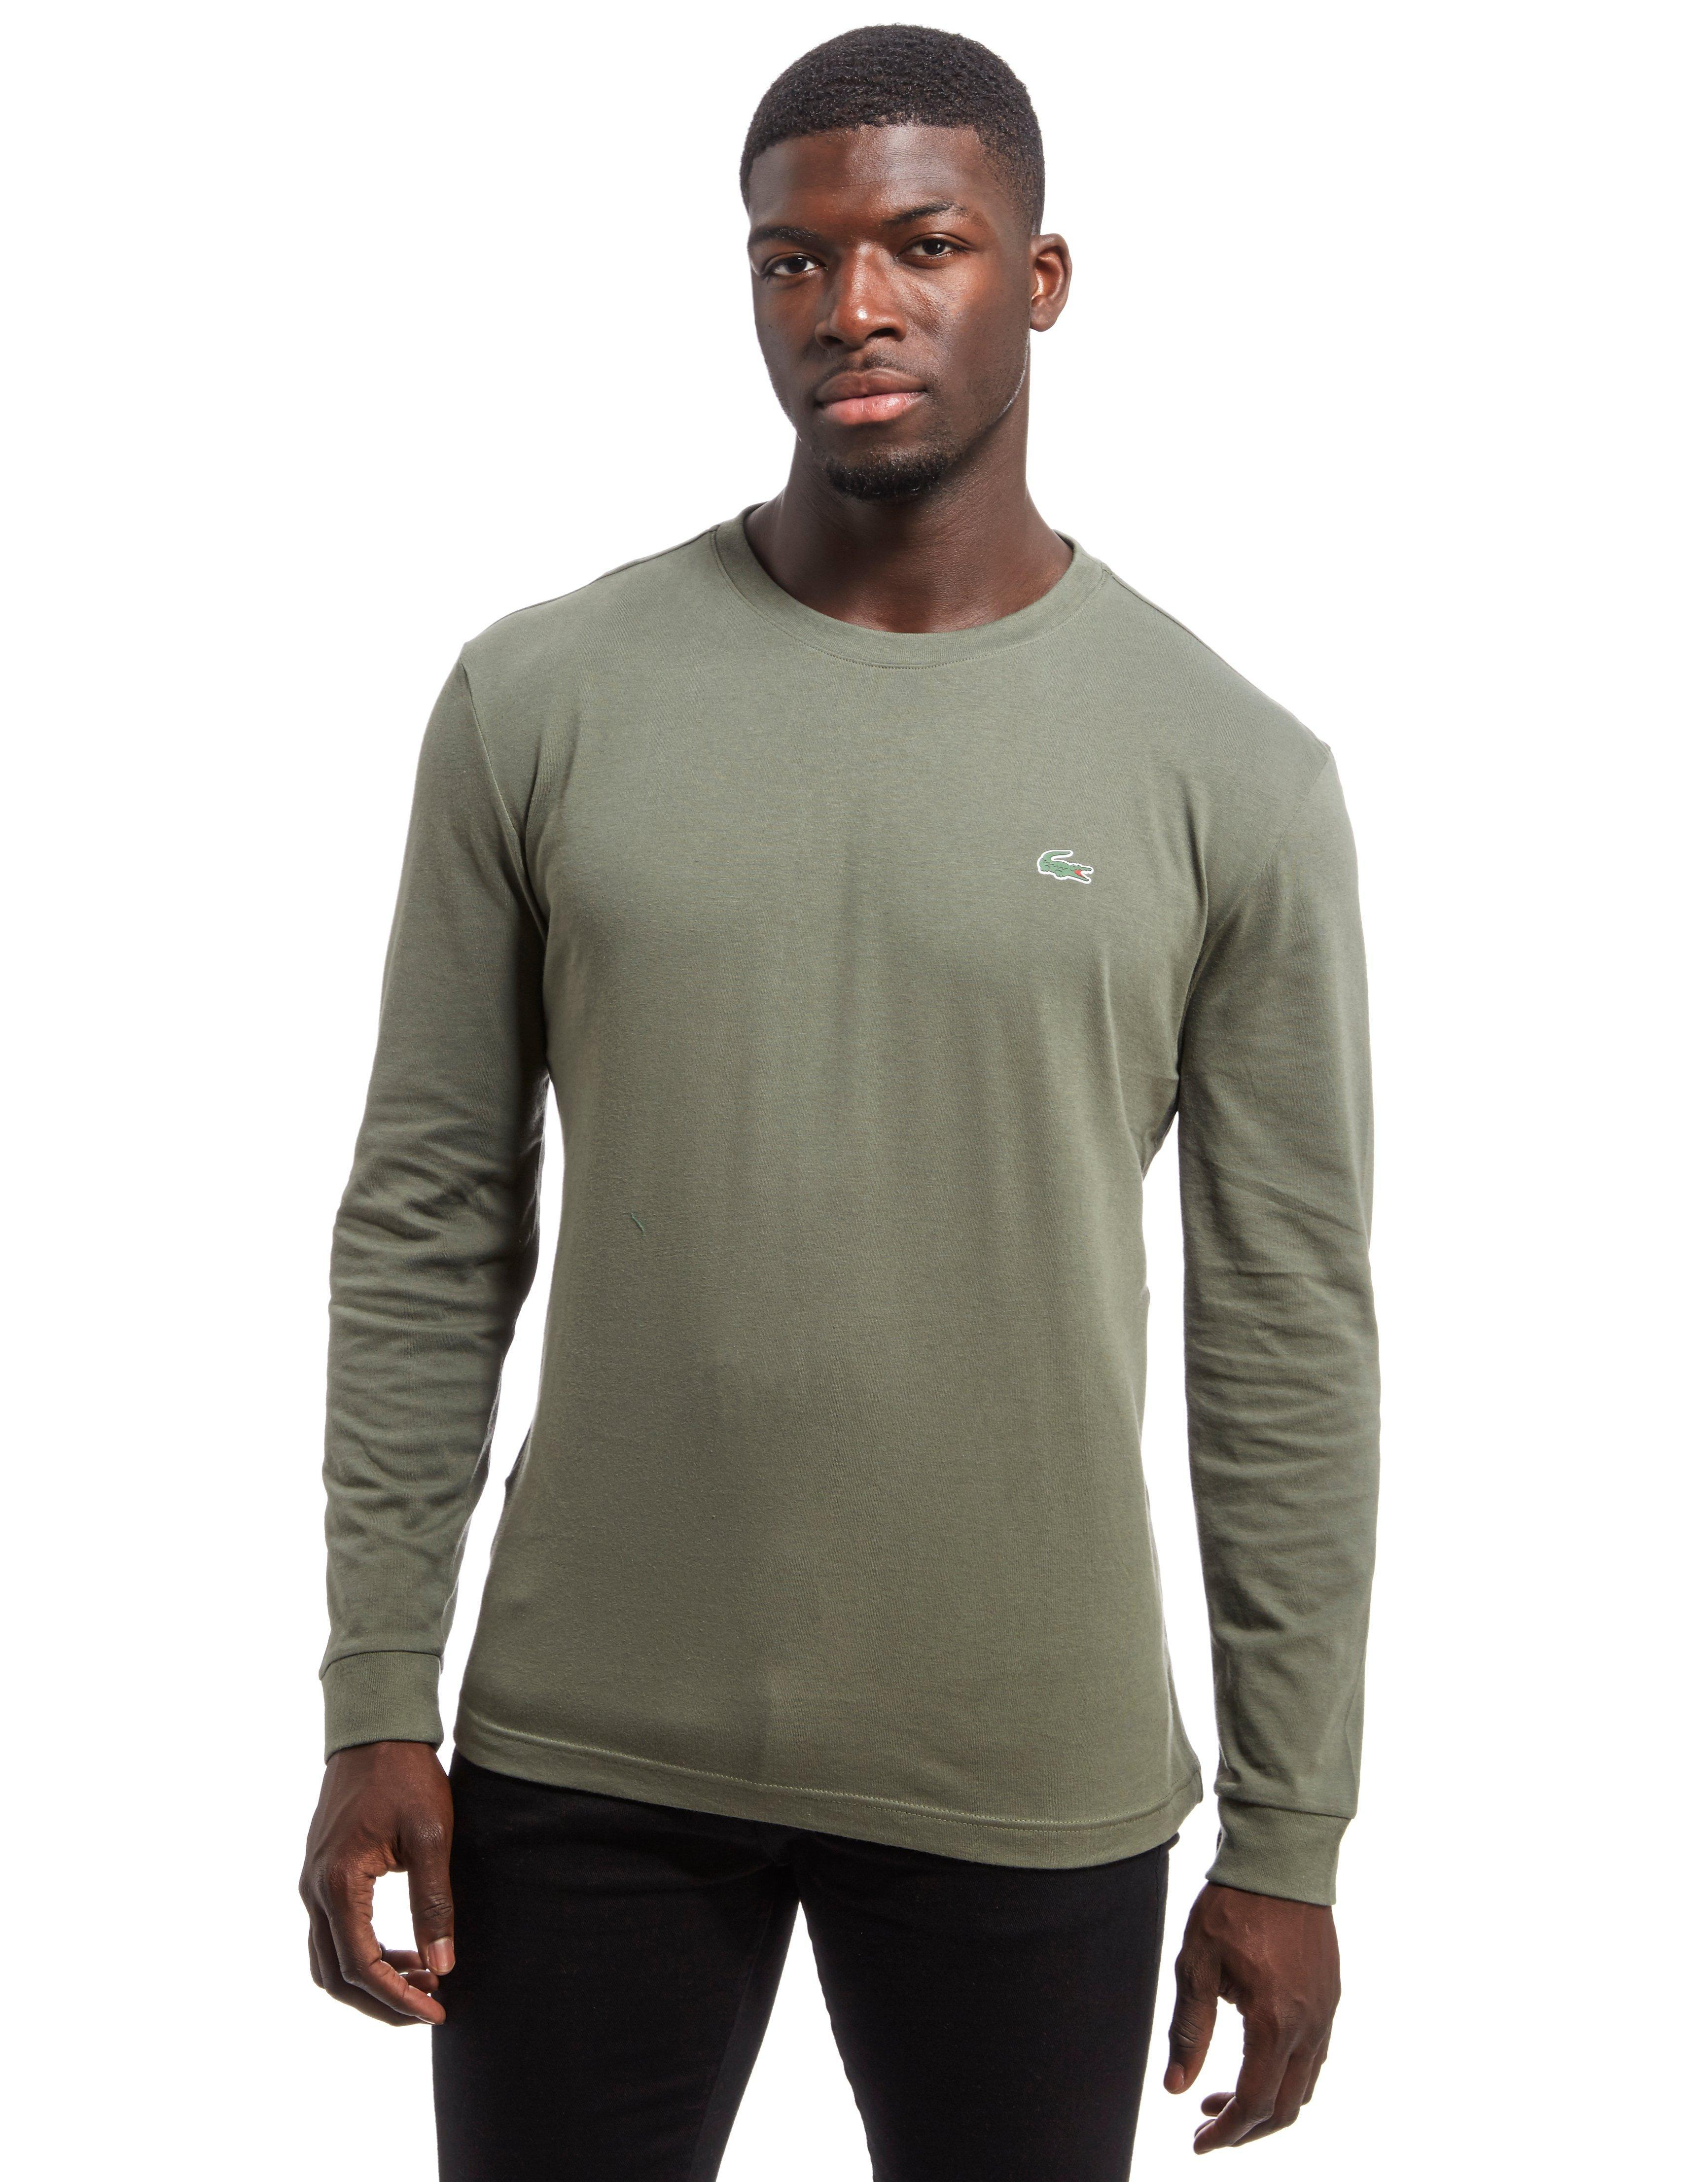 c8d5e0ab Lacoste Croc Long-sleeved T-shirt in Green for Men - Lyst